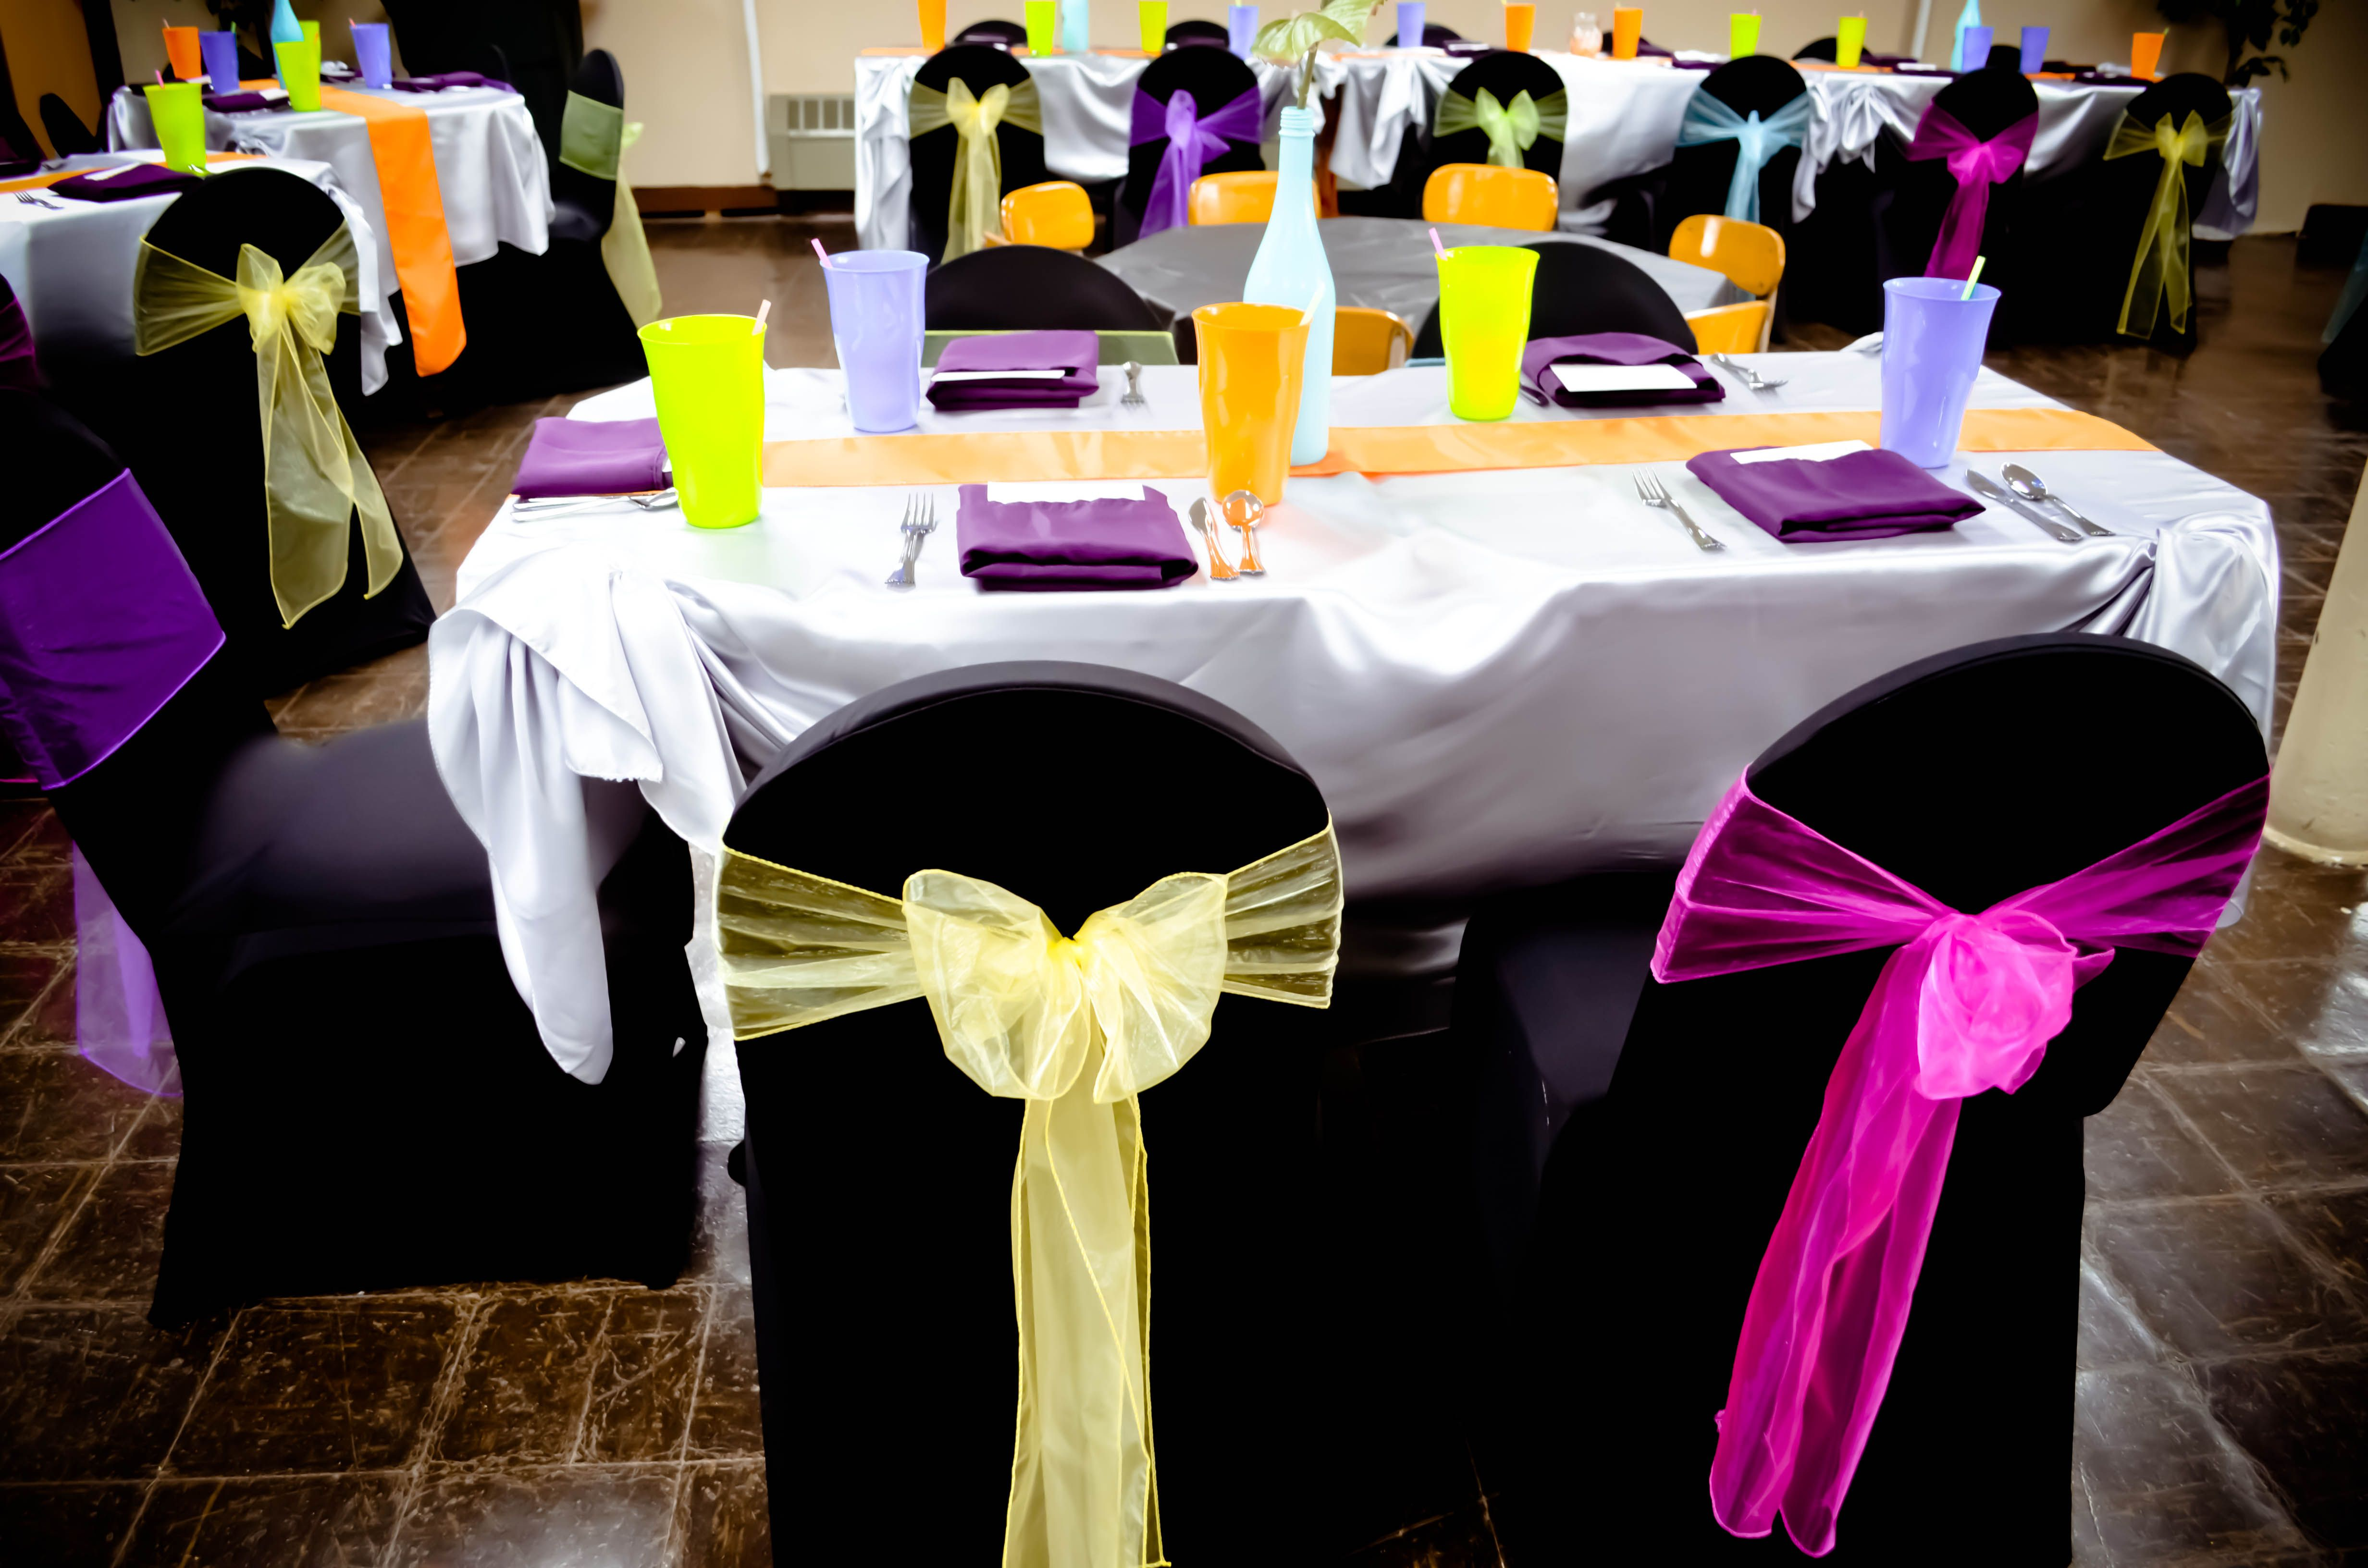 Party: Black Spandex Chair Covers, Silver Satin Tablecloths With Orange  Satin Table Runners,